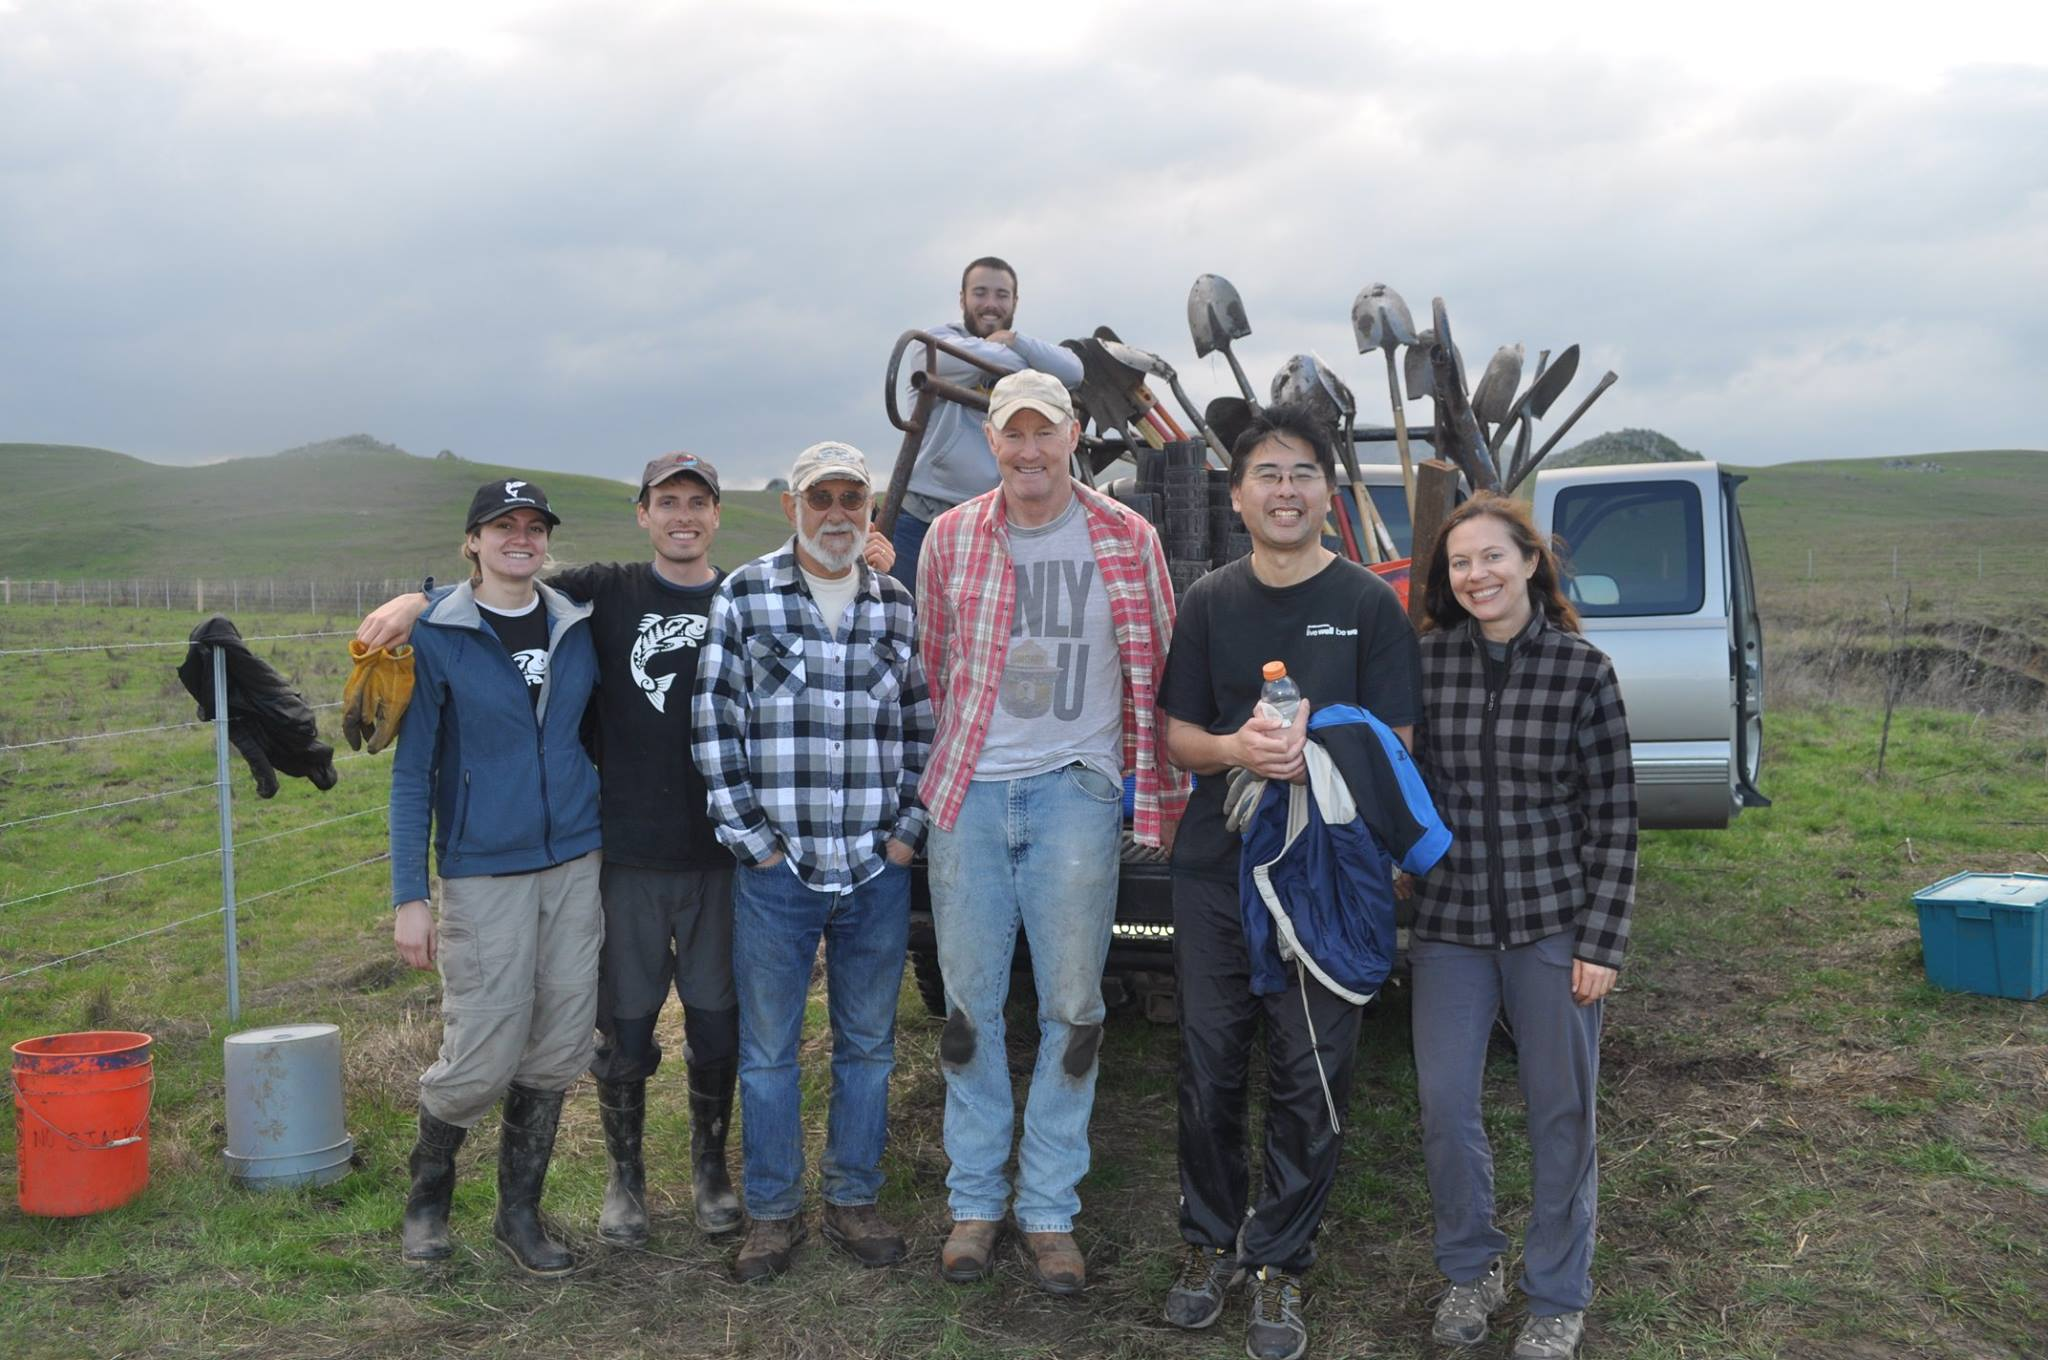 Volunteers Plant Redwood Groves in Nicasio to Fight Climate Change